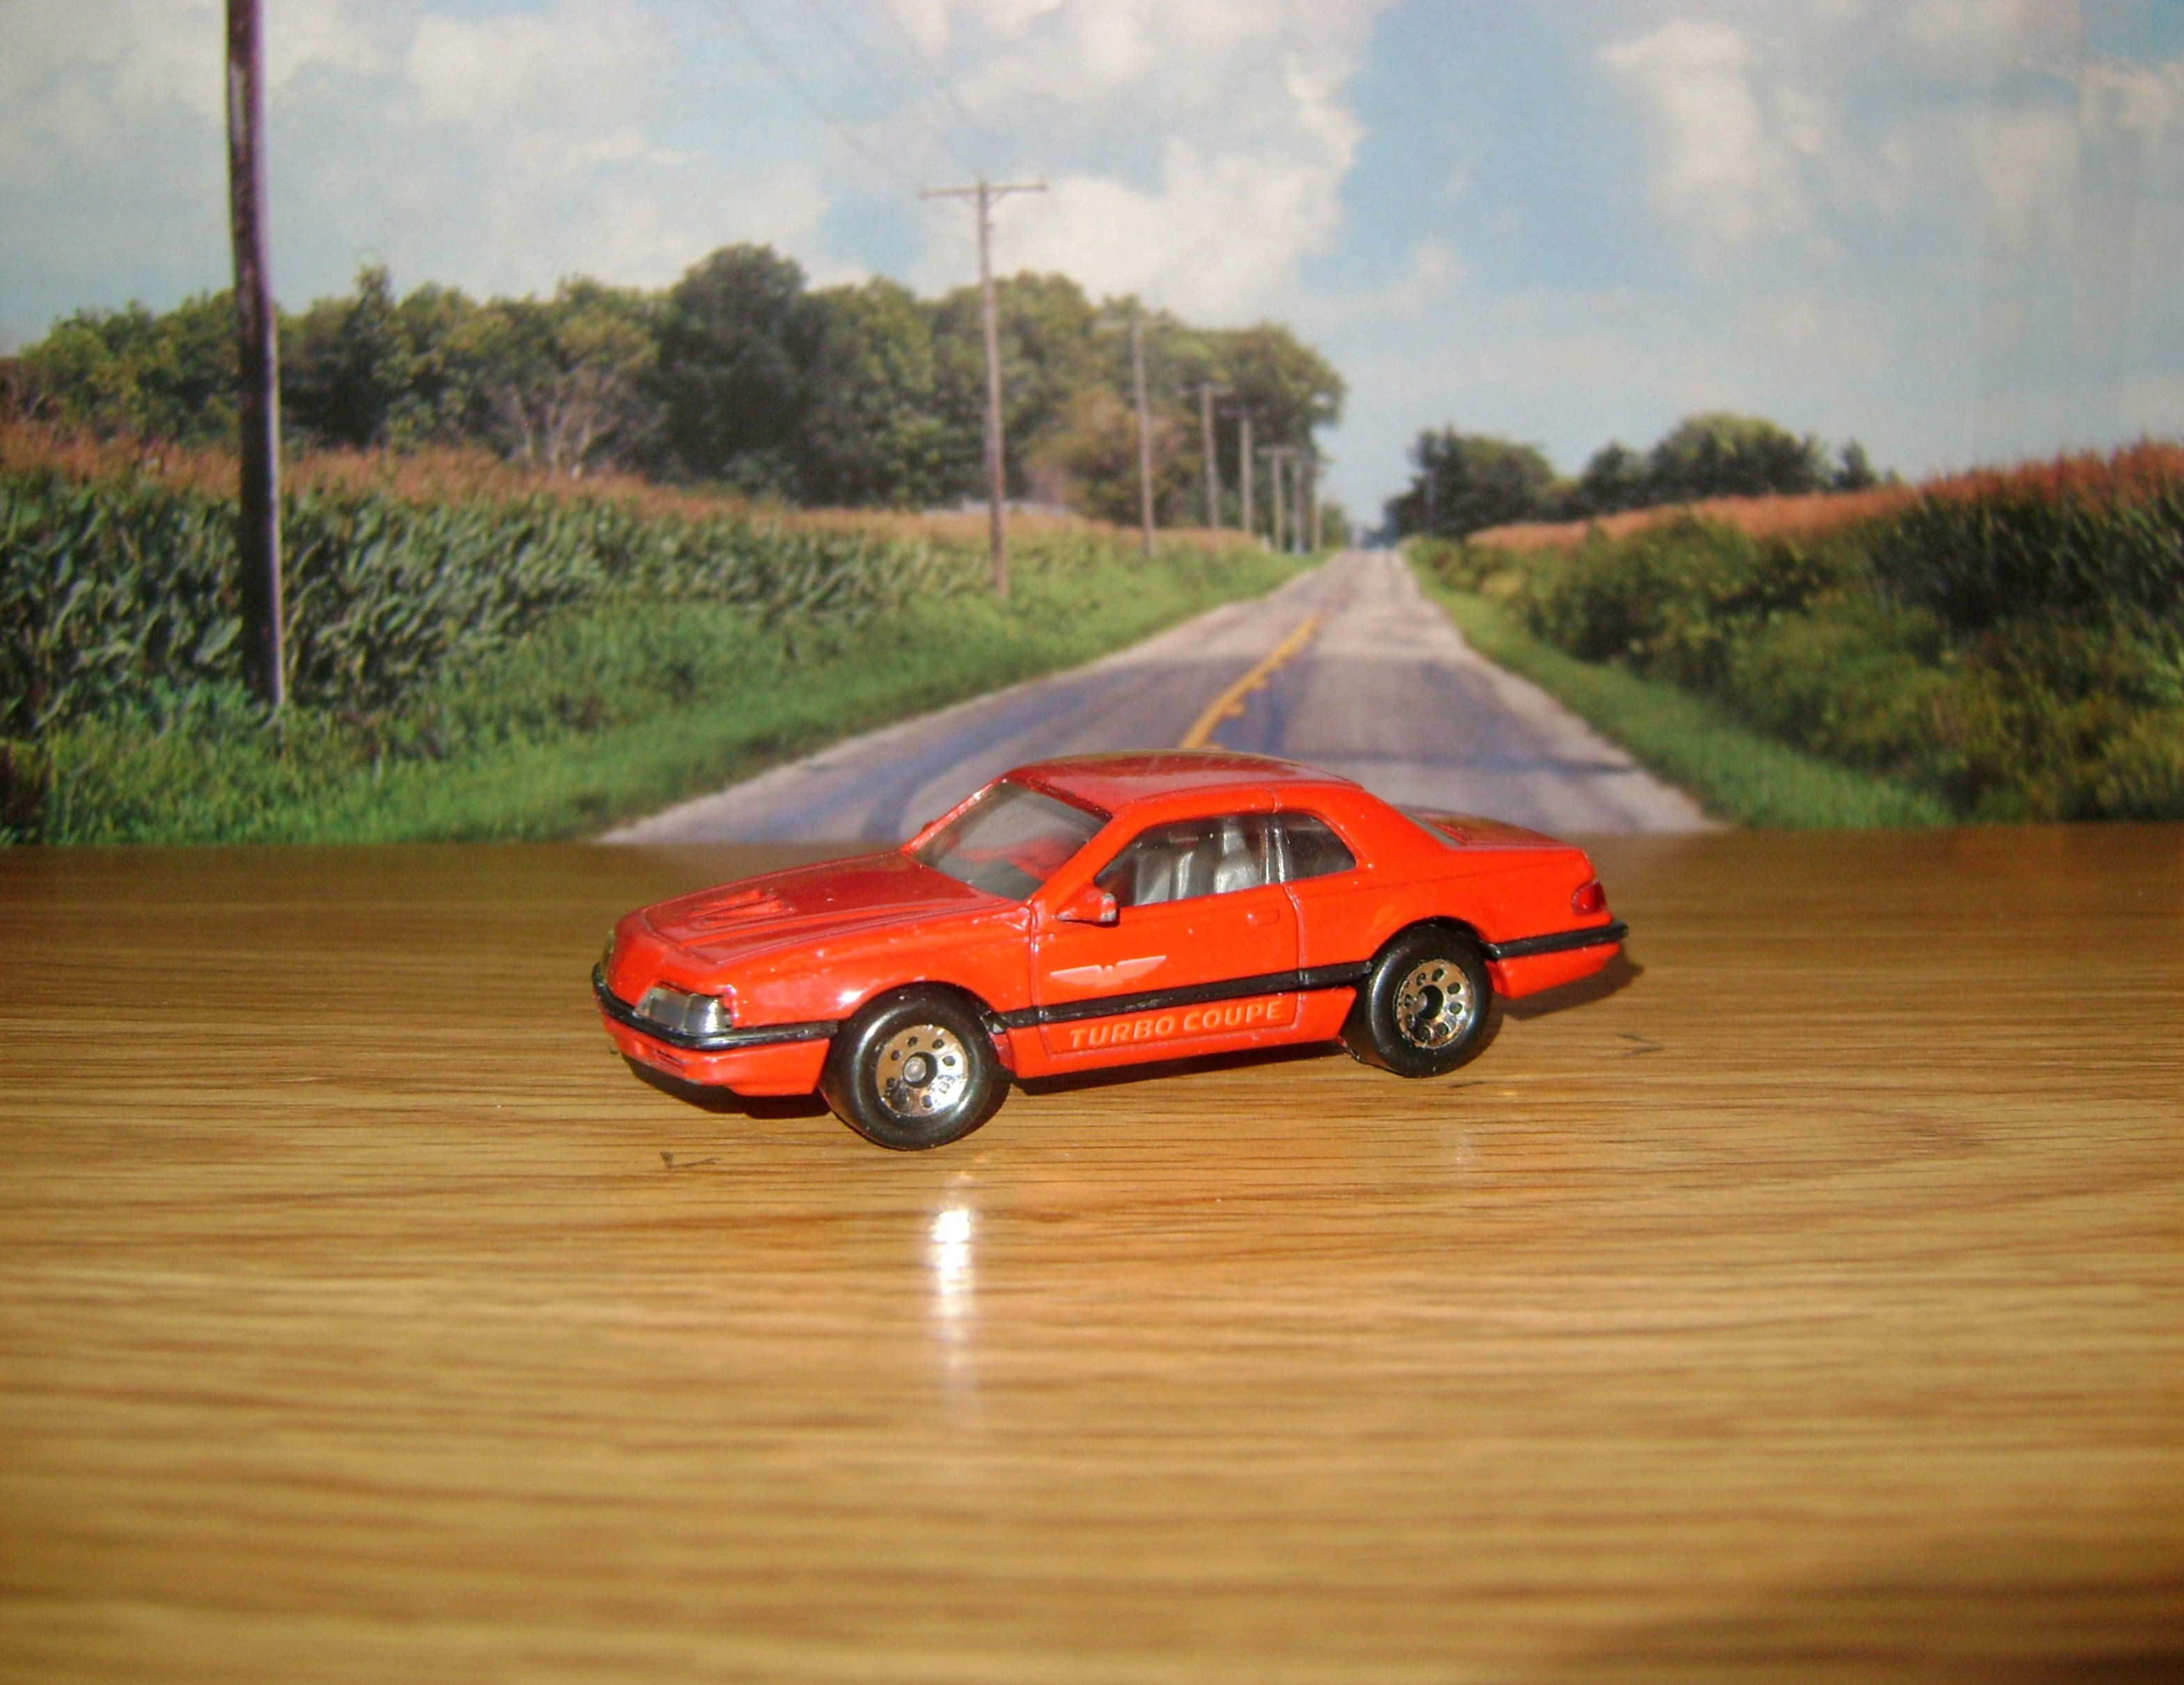 1988 Ford Thunderbird Turbo Coupe by HuskyDiecastPlanet on DeviantArt